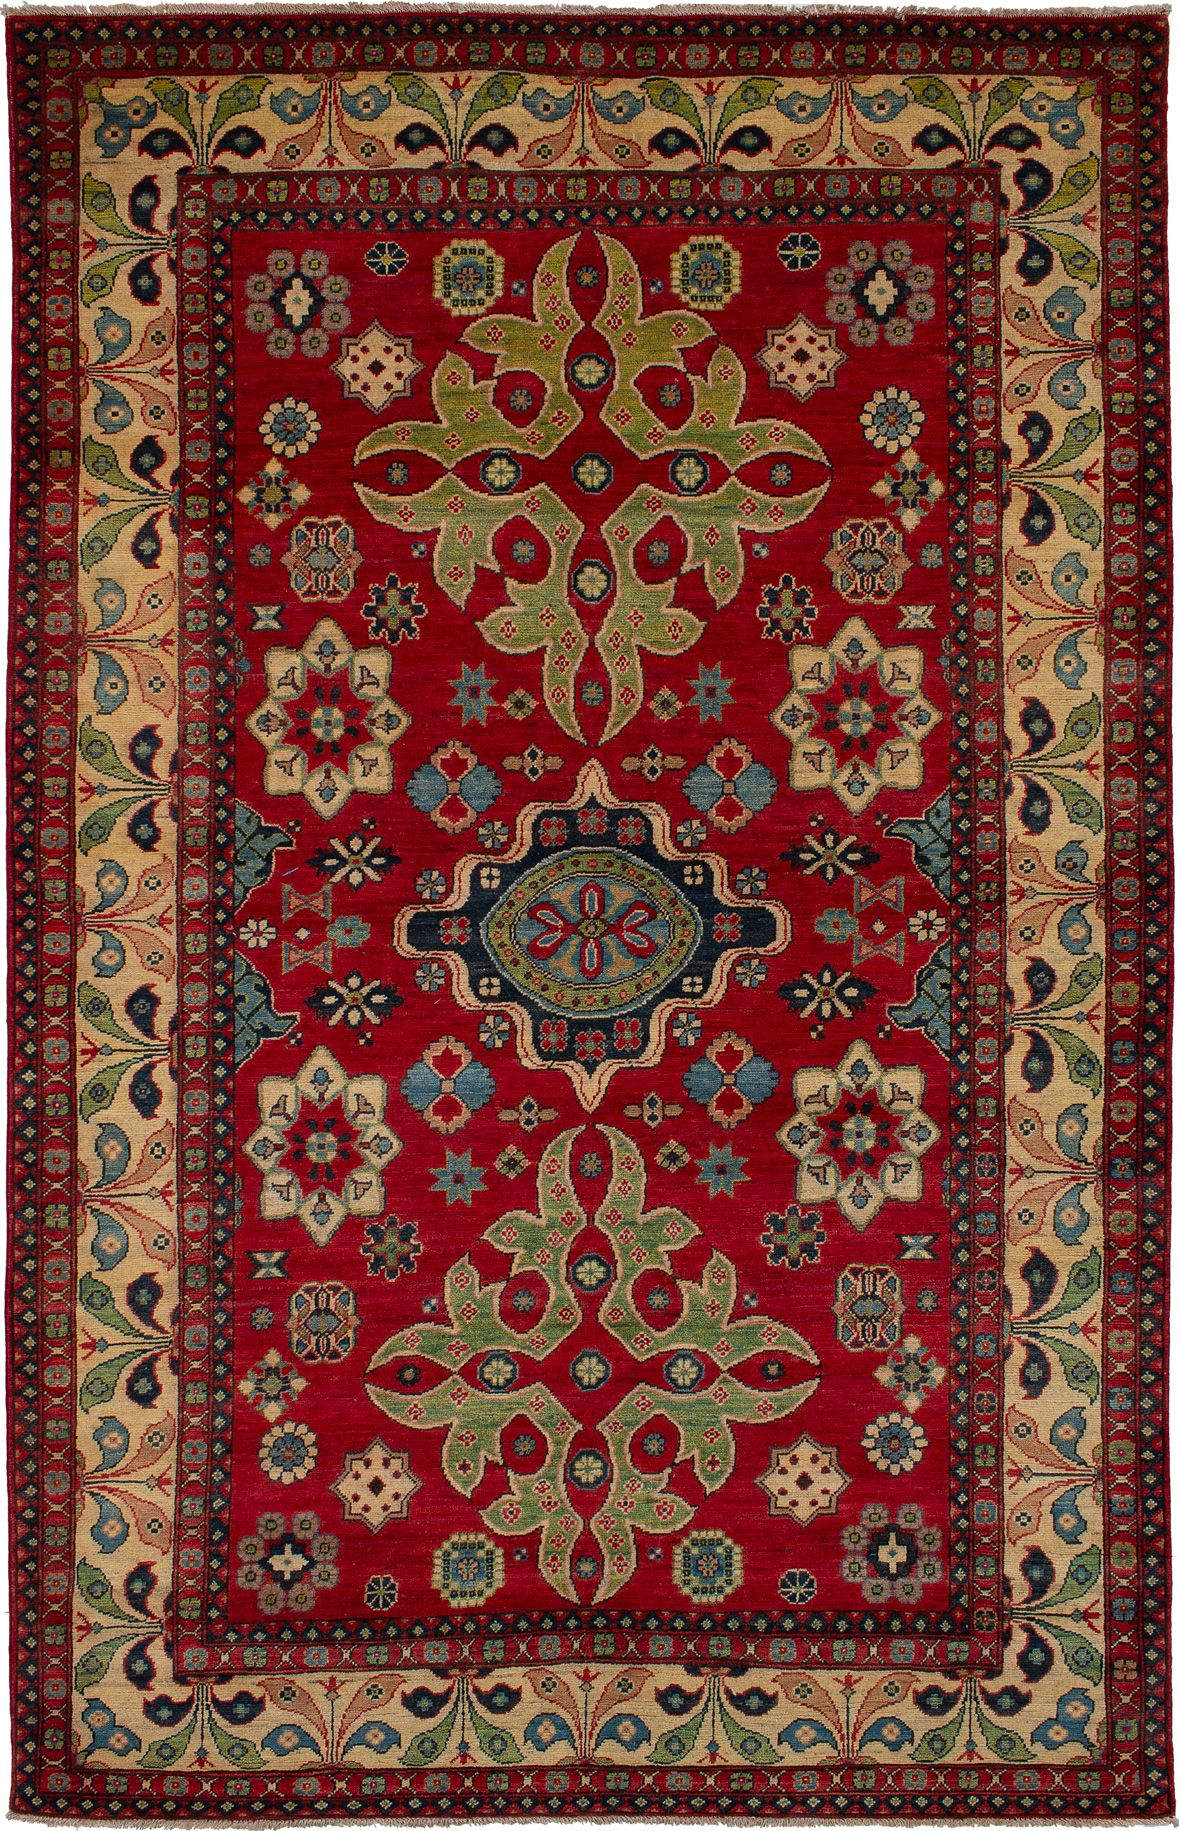 """Hand-knotted Finest Gazni Red Wool Rug 6'5"""" x 10'2""""  Size: 6'5"""" x 10'2"""""""